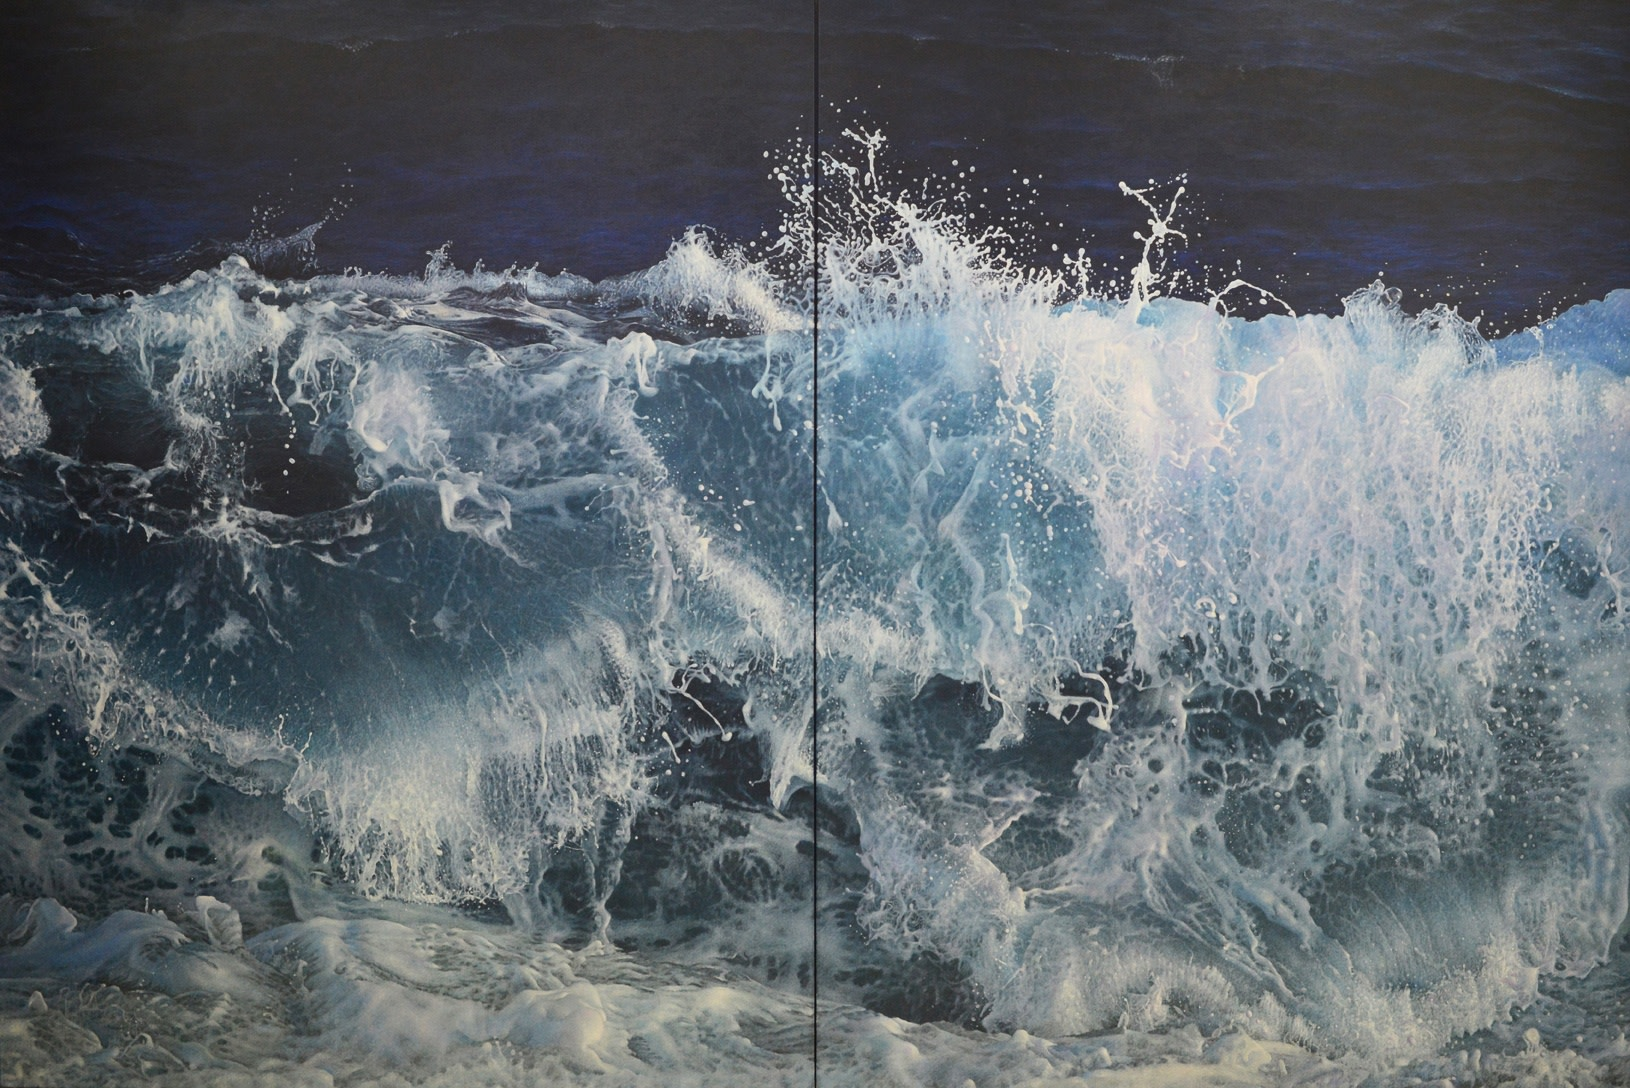 <span class=&#34;link fancybox-details-link&#34;><a href=&#34;/exhibitions/113/works/artworks2420/&#34;>View Detail Page</a></span><div class=&#34;artist&#34;><strong>Antonis Titakis</strong></div><div class=&#34;title&#34;><em>Wave in the Light of the Moon (Diptych)</em>, 2016</div><div class=&#34;medium&#34;>Oil on canvas</div><div class=&#34;dimensions&#34;>100 x 300 cm (100 x 150 cm each)</div>